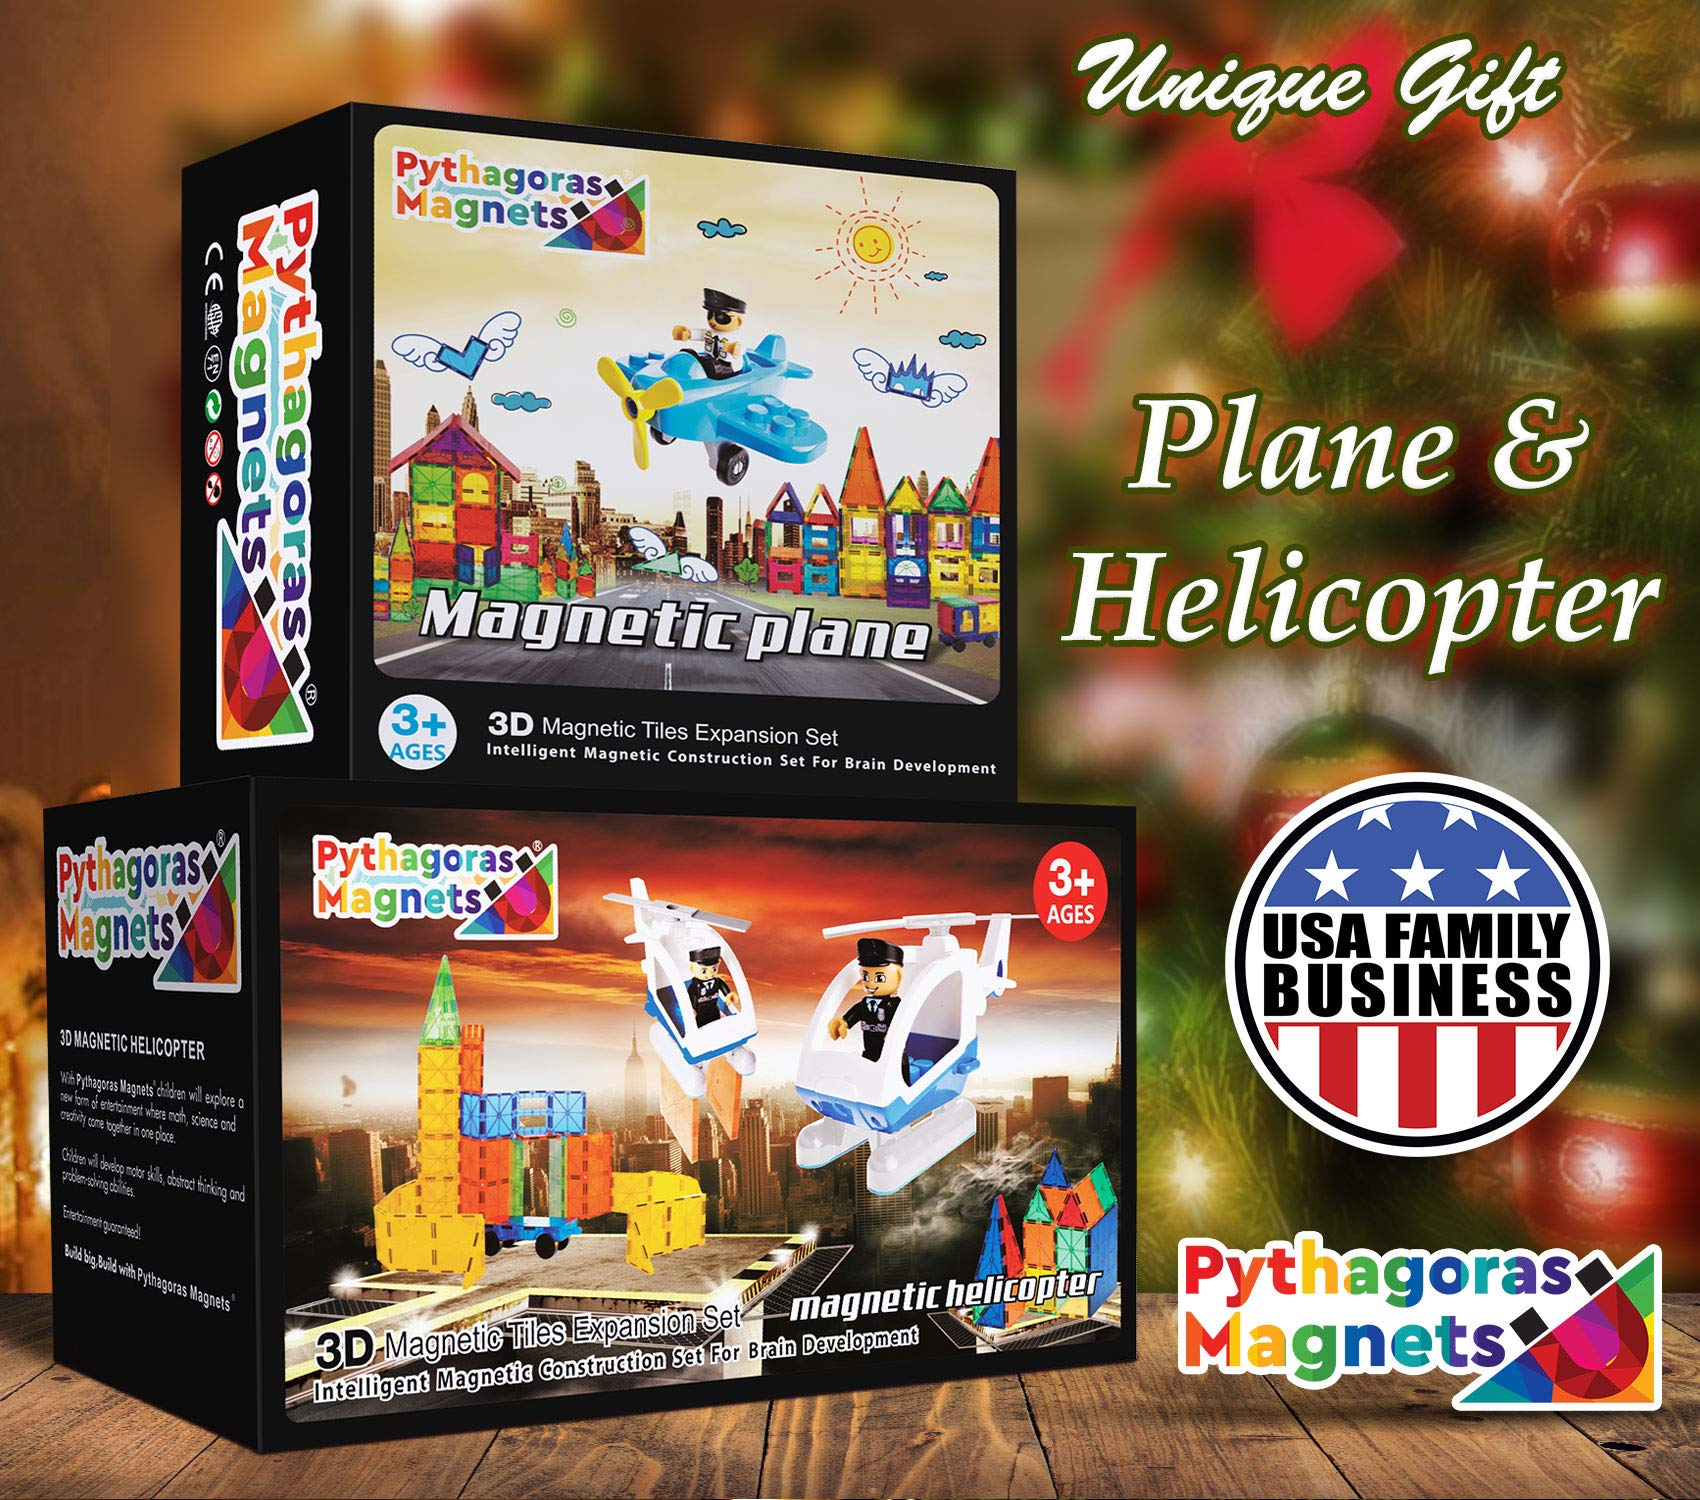 Flying Helicopter Toy Police Set with Magnets Flying Magnetic Plane - Policeman Toys Add on Sets for Magnetic Blocks - Magnetic Tiles Expansion Kids Educational STEM Learning Toys for Boys and Girls by Pythagoras Magnets (Image #2)